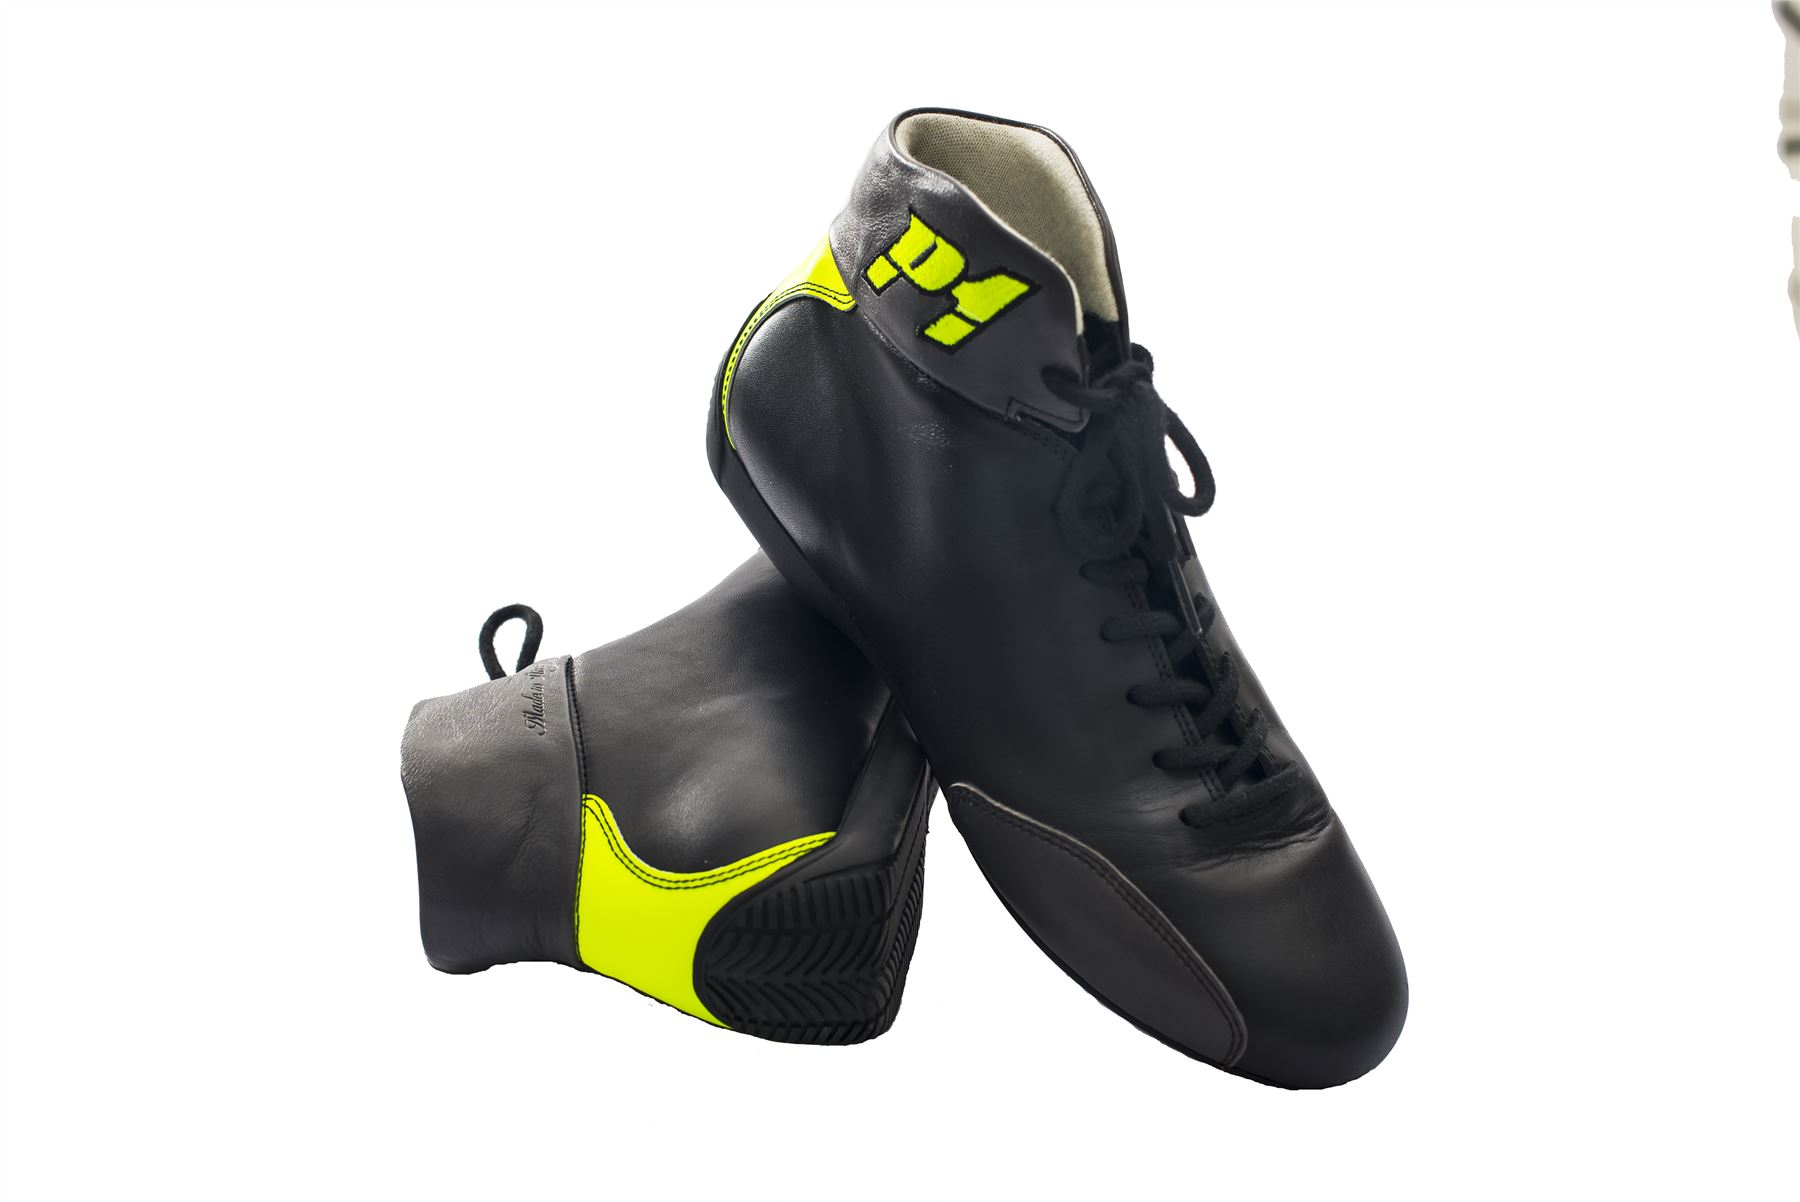 Indexbild 10 - P1-Racewear-Monza-FIA-Approved-Soft-Leather-Race-Rally-Boots-Black-Fluro